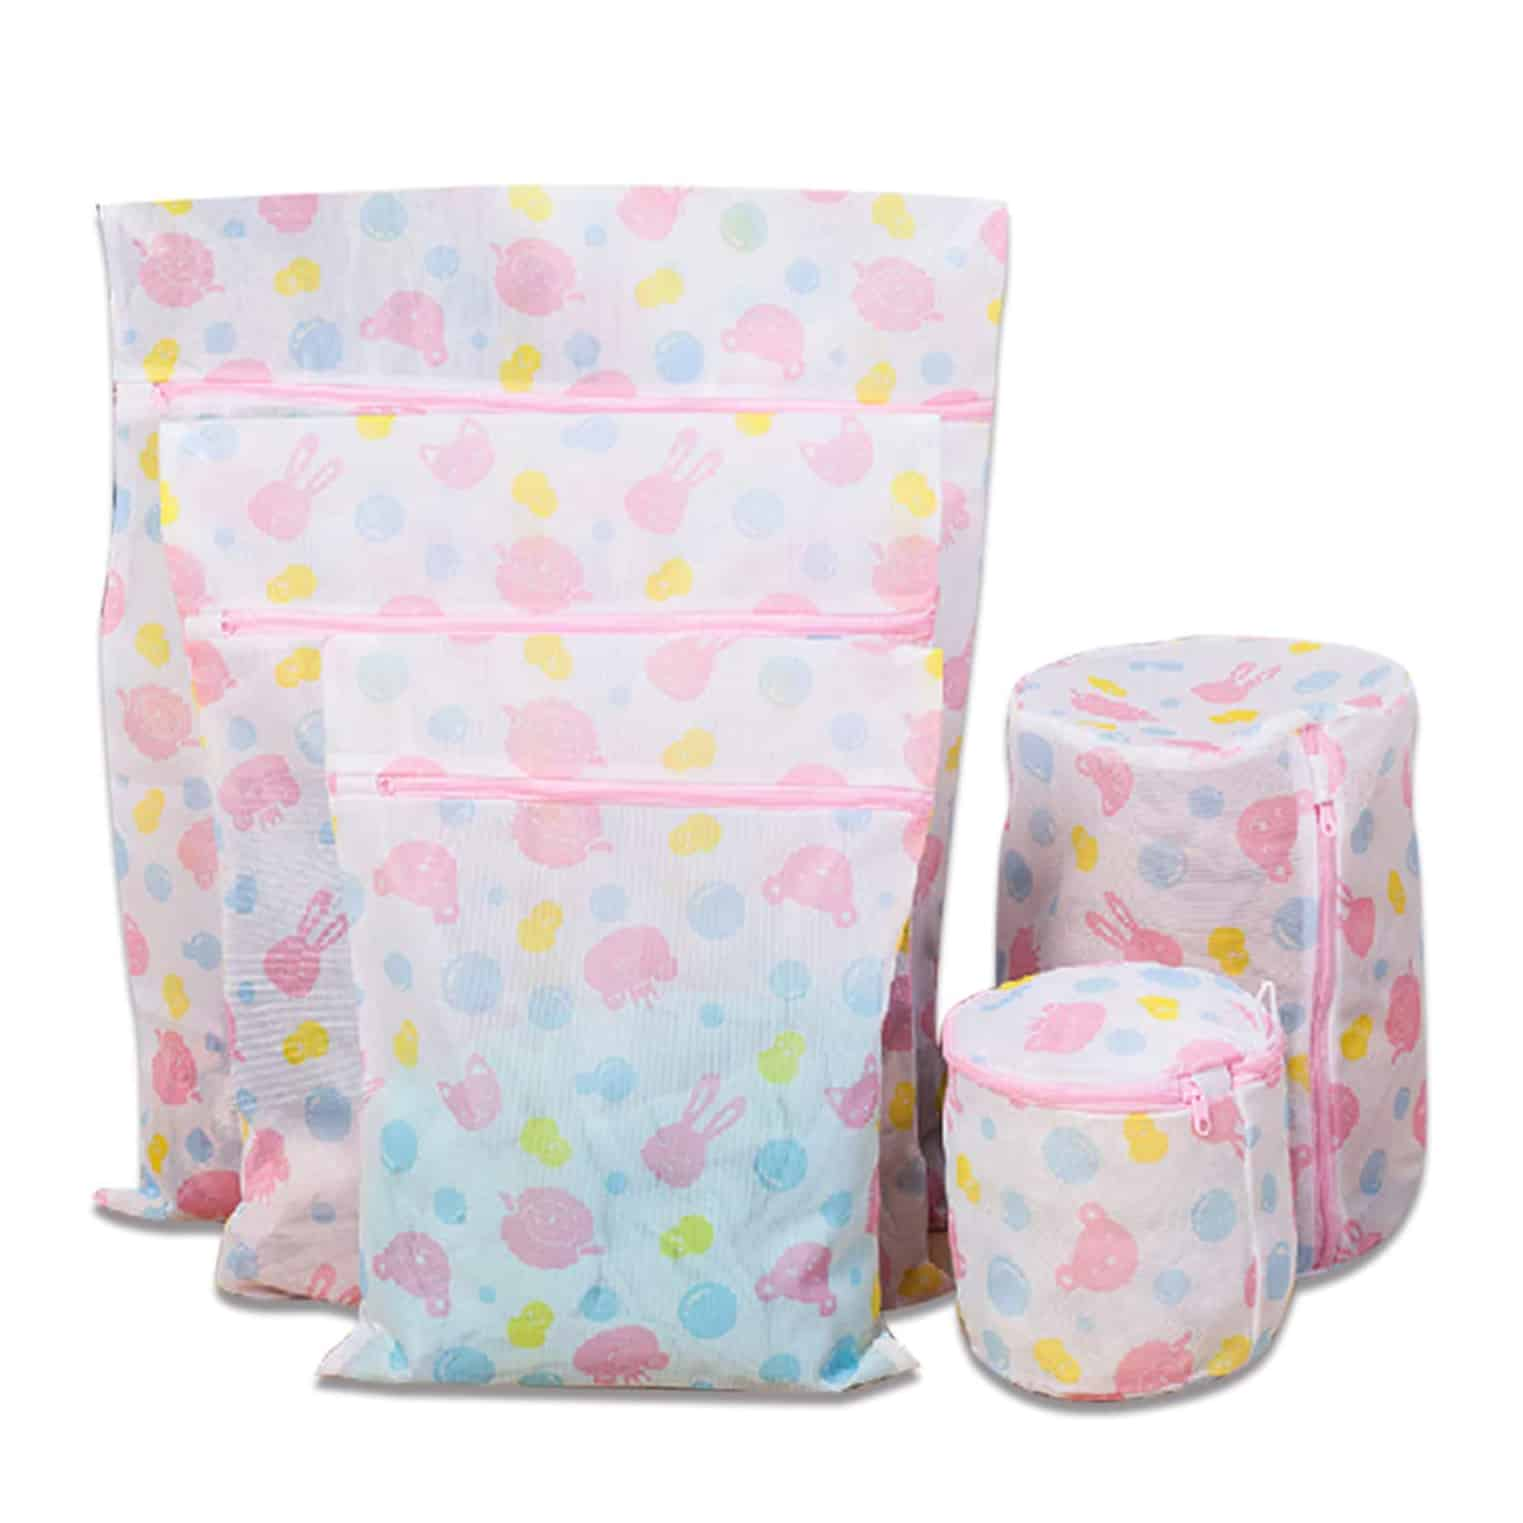 Laundry Bags, Lingerie Bags for Laundry